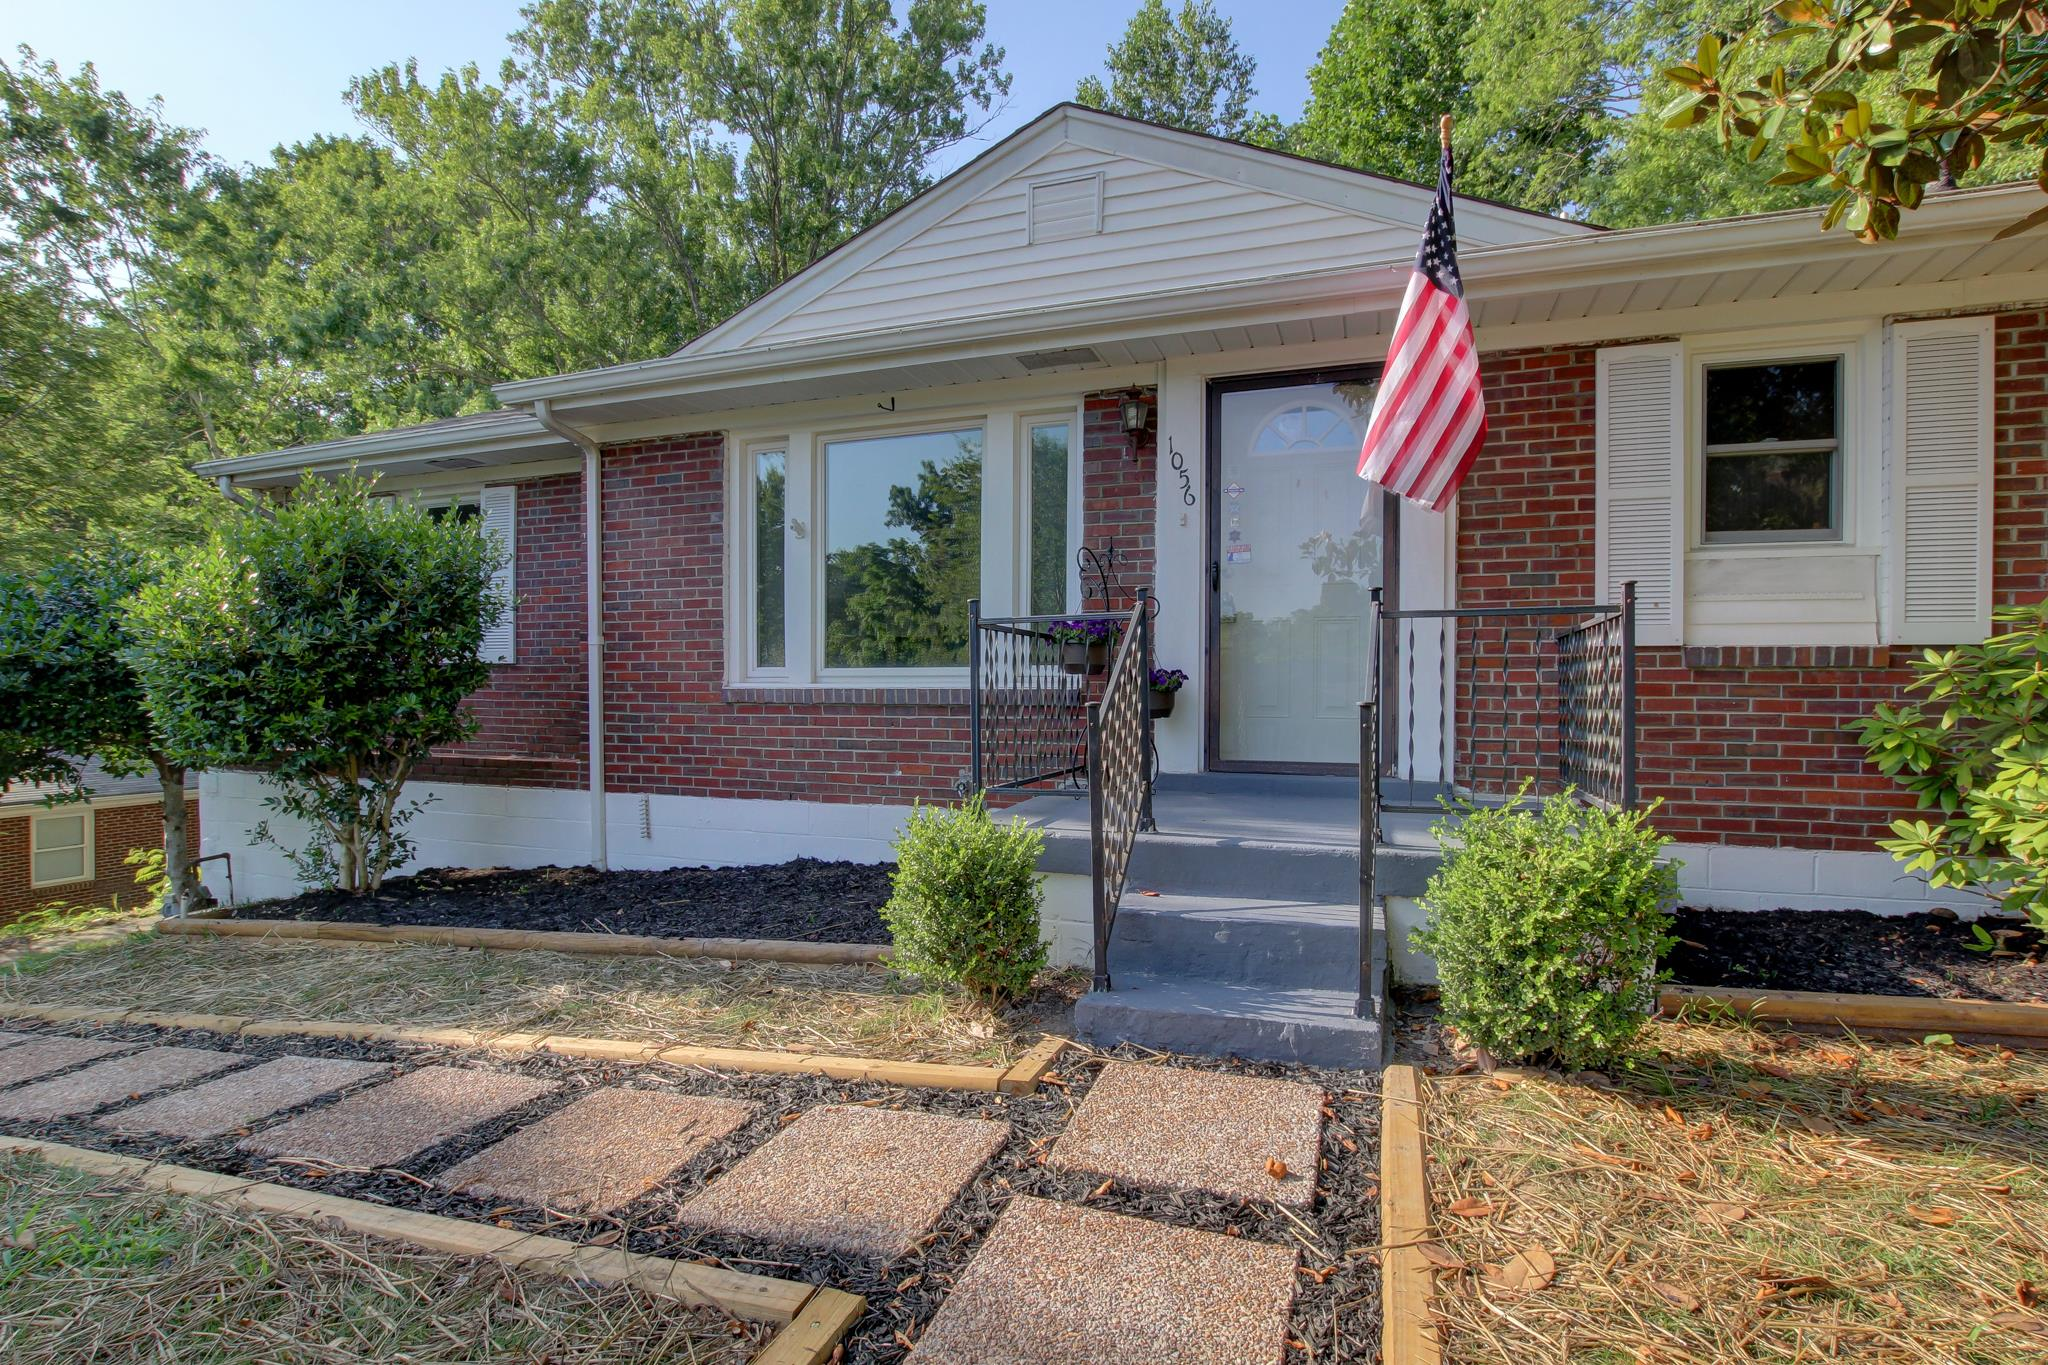 Homes for Sale in Fairmont Subdivision Clarksville TN